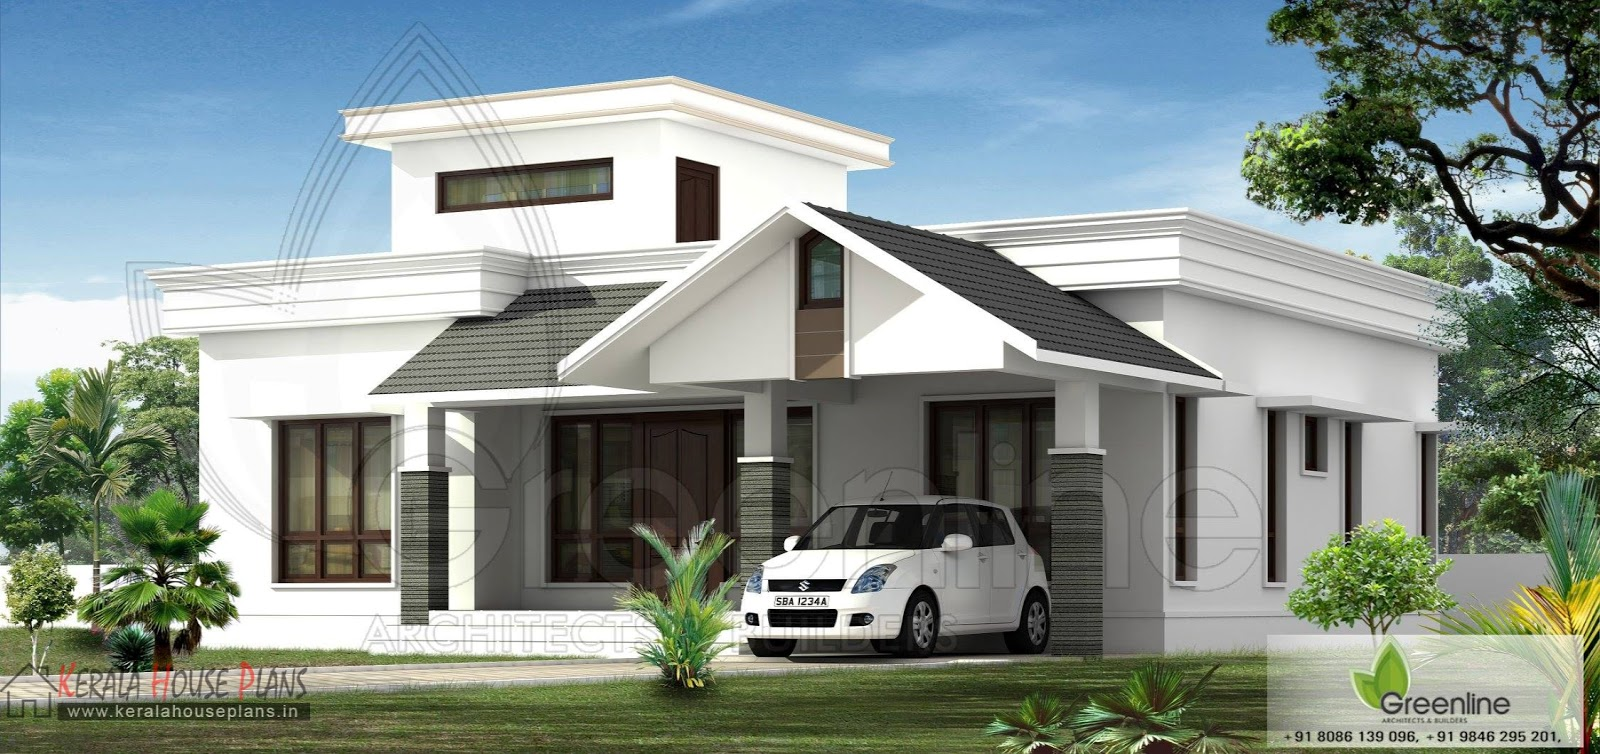 Kerala house Elevation and Photos in 1500 sqft front elevation